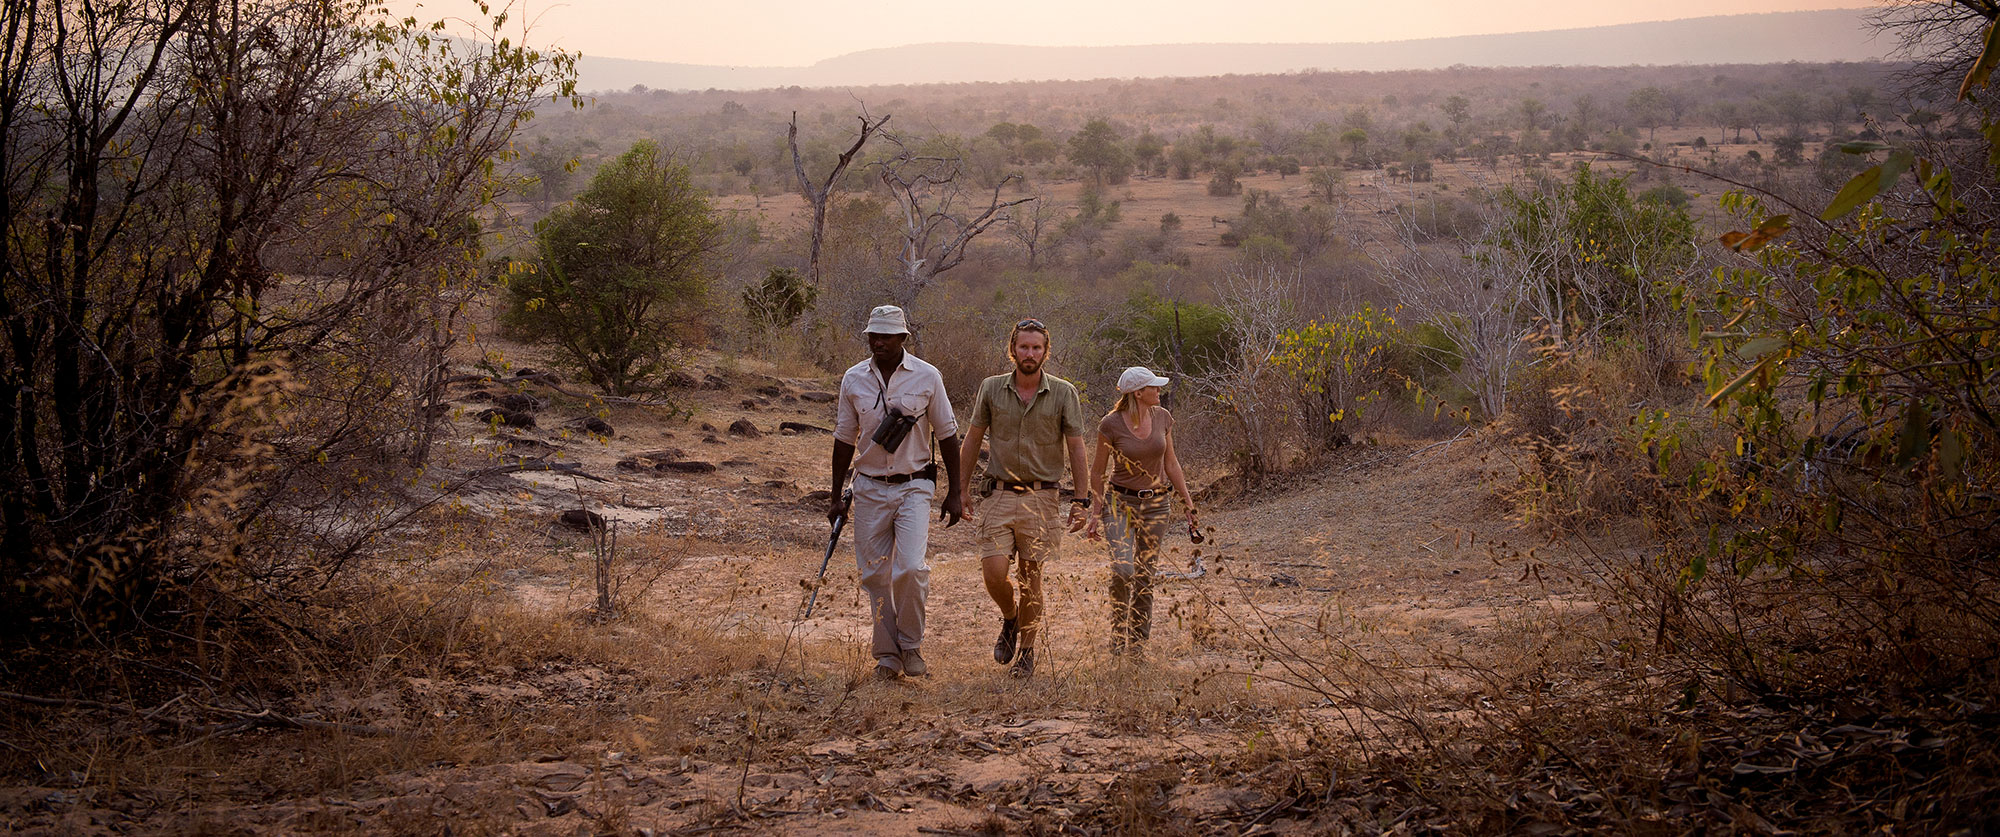 Tanzania Travel Packages - Walking Safaris at Sand Rivers Selous Lodge, Selous Game Reserve